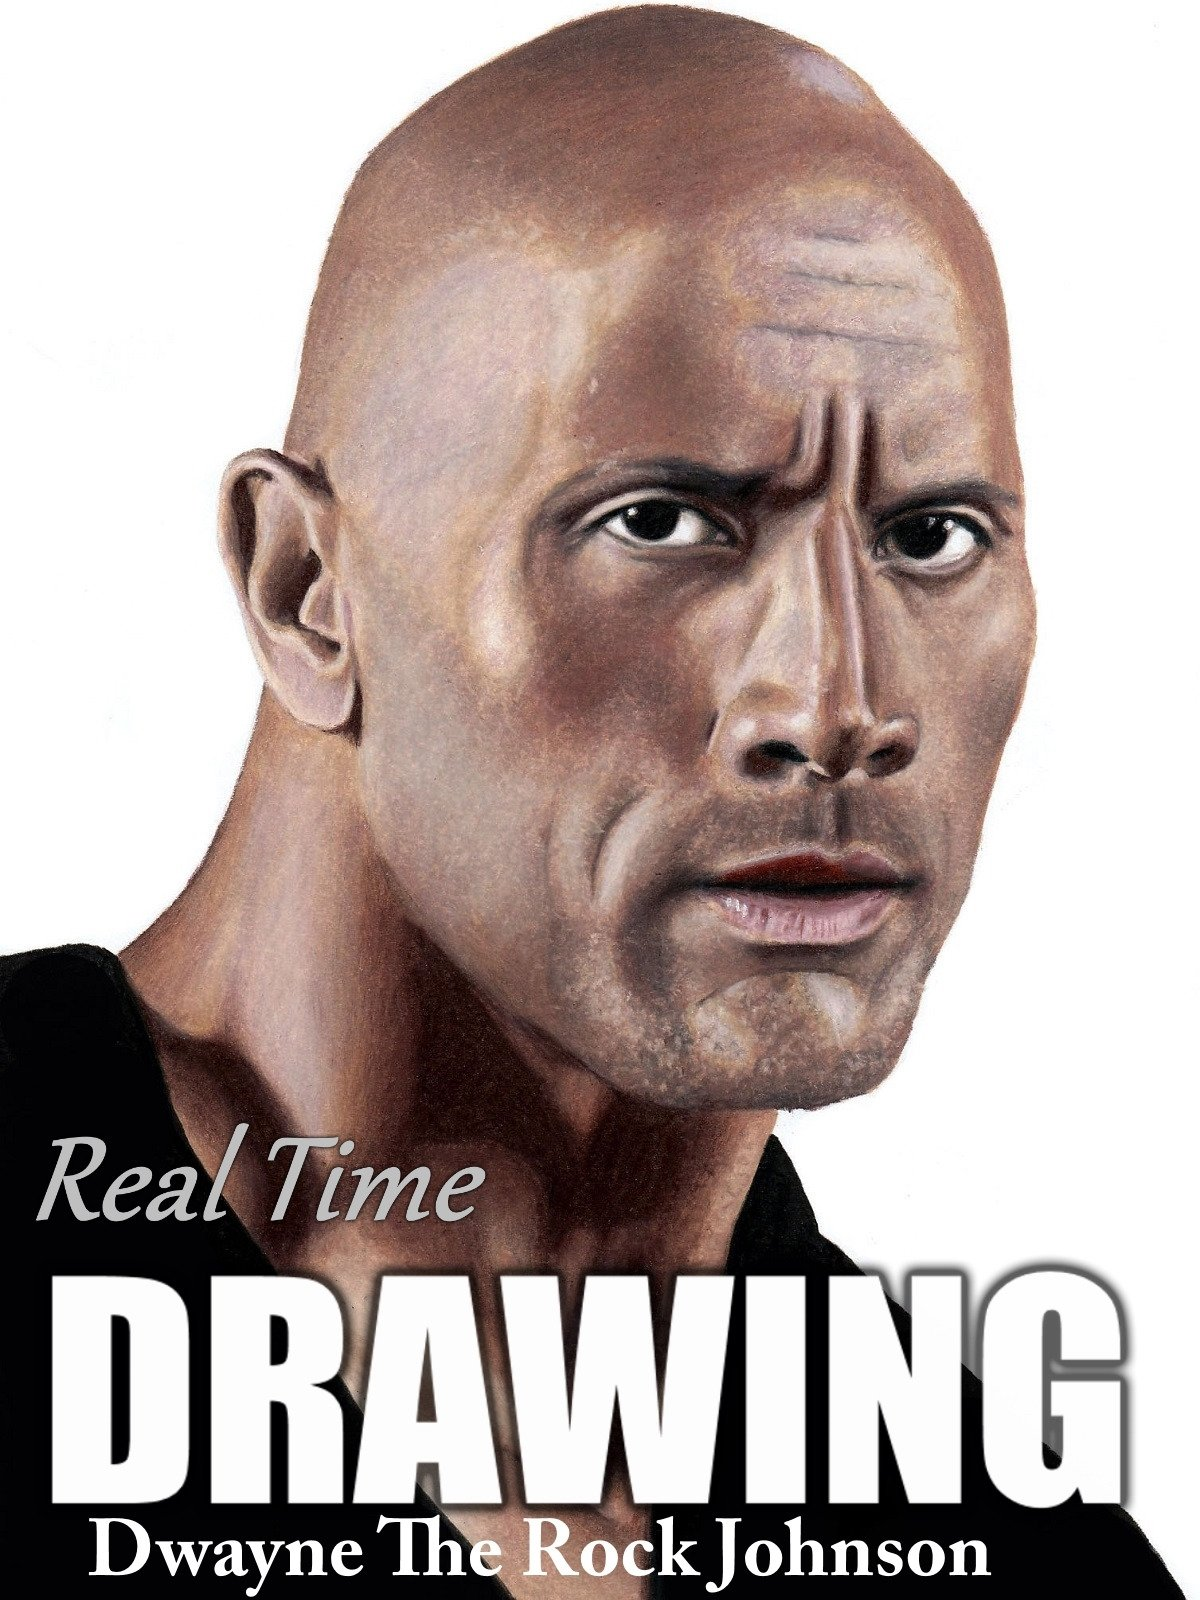 Real Time Drawing Dwayne The Rock Johnson